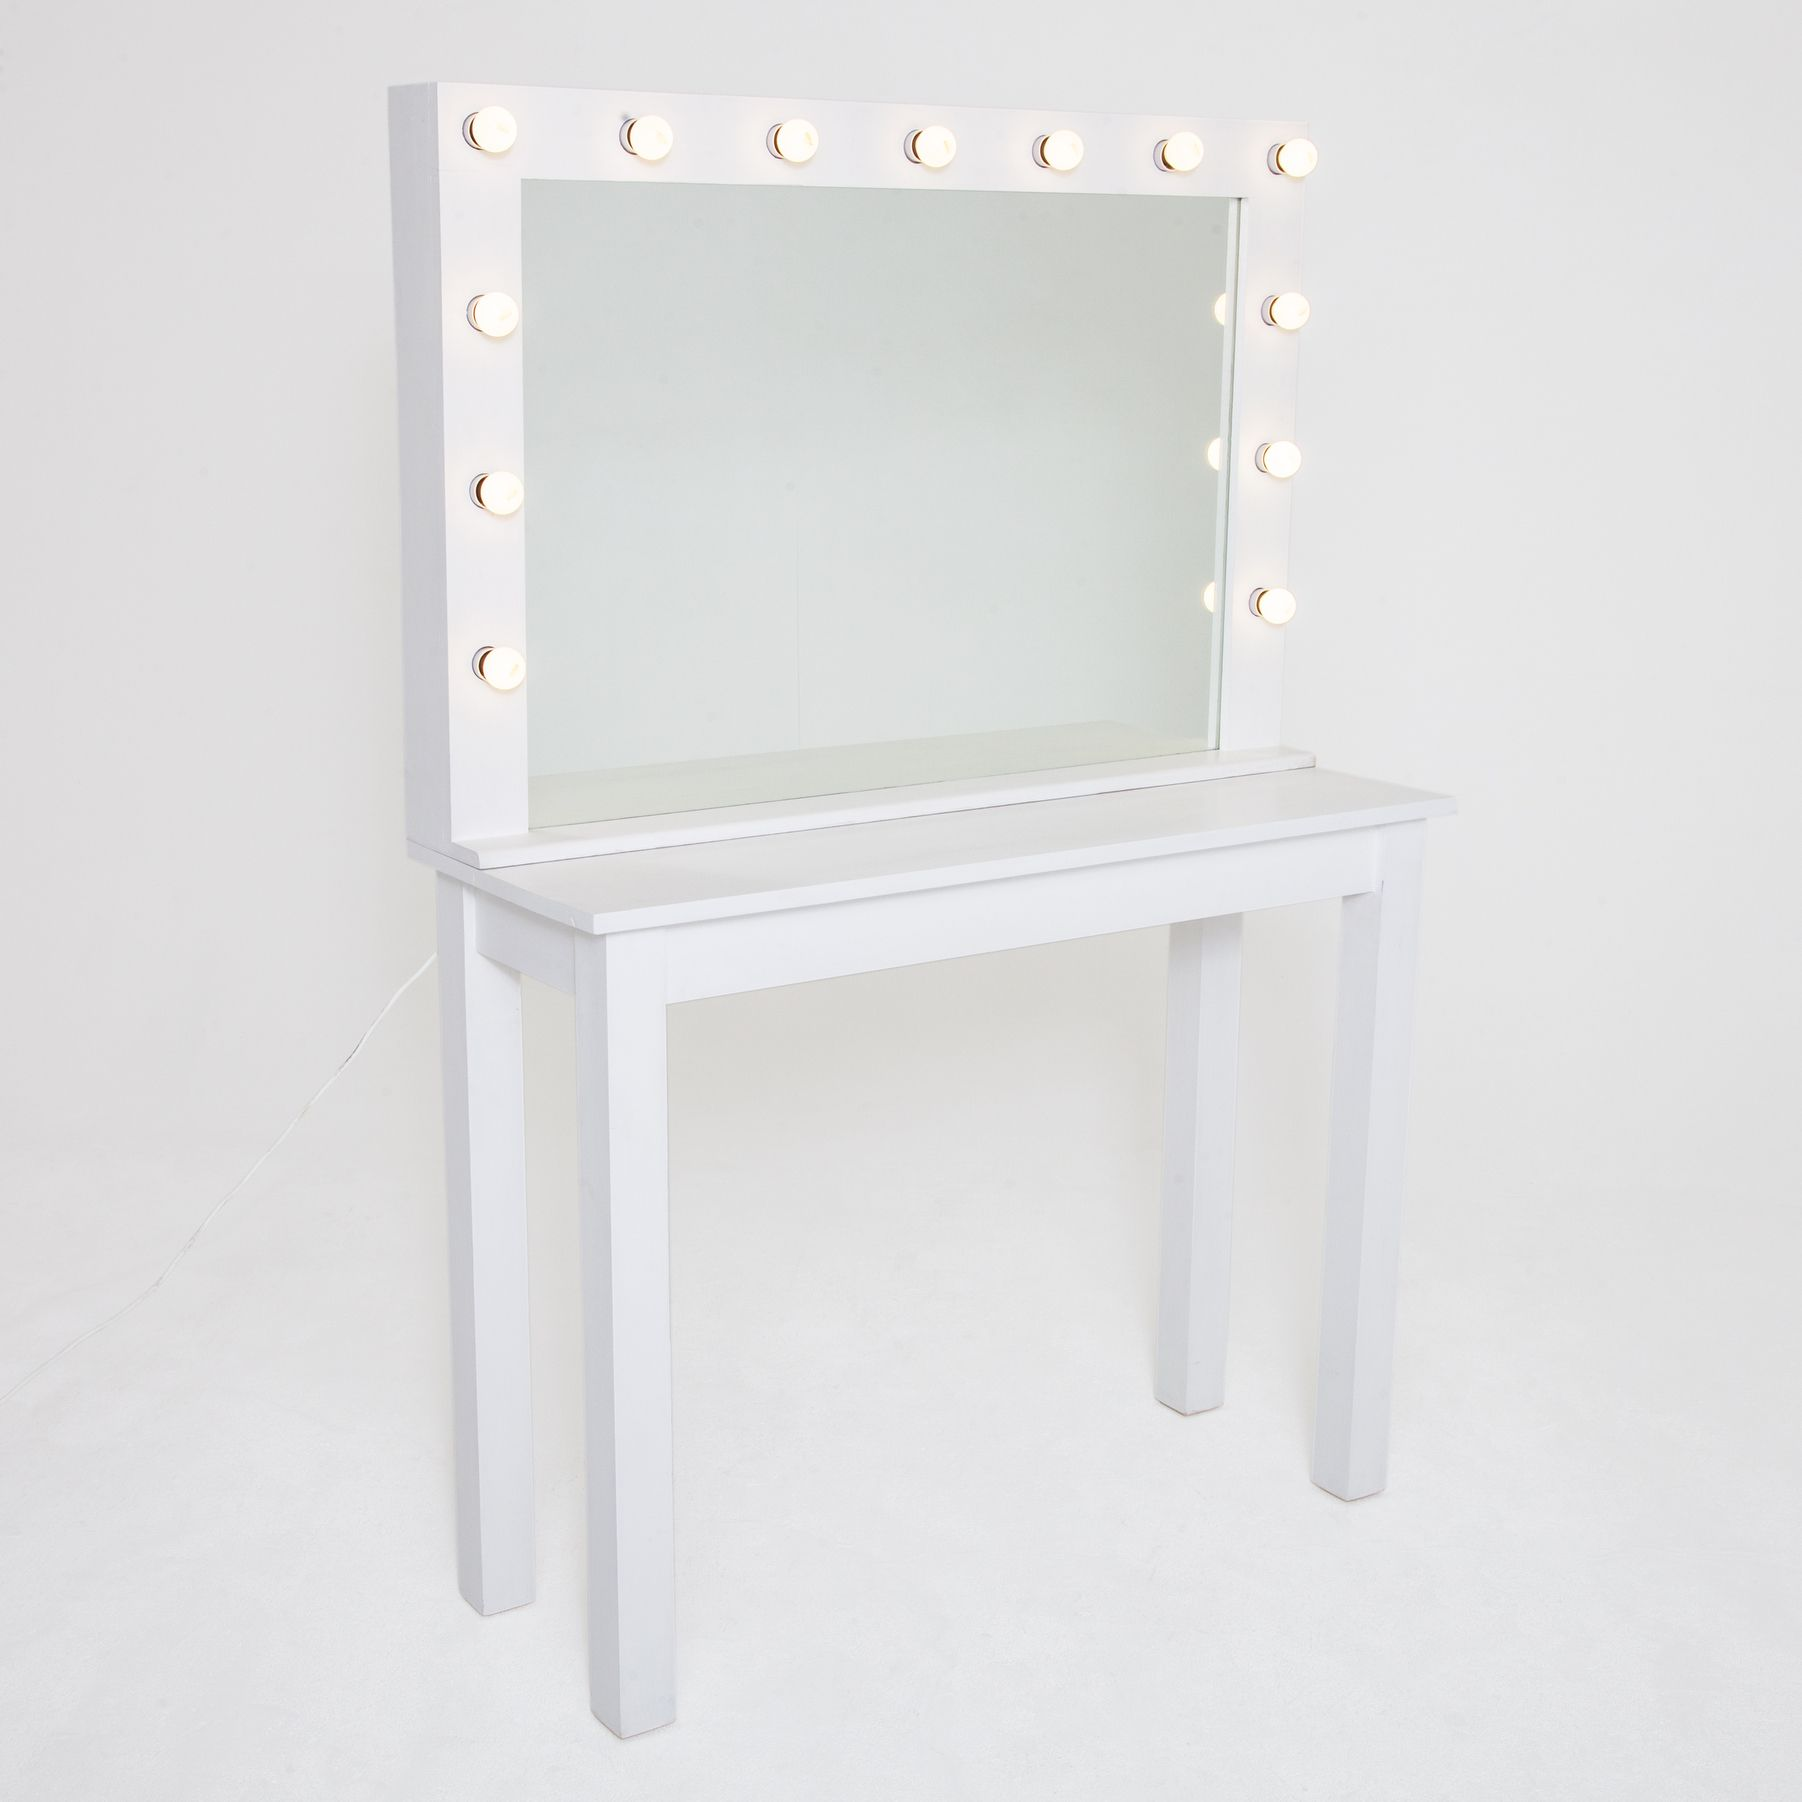 Prop 83 theatre style dressing table height tbc x width tbc x theatre style dressing table height tbc x width tbc x depth tbc watchthetrailerfo